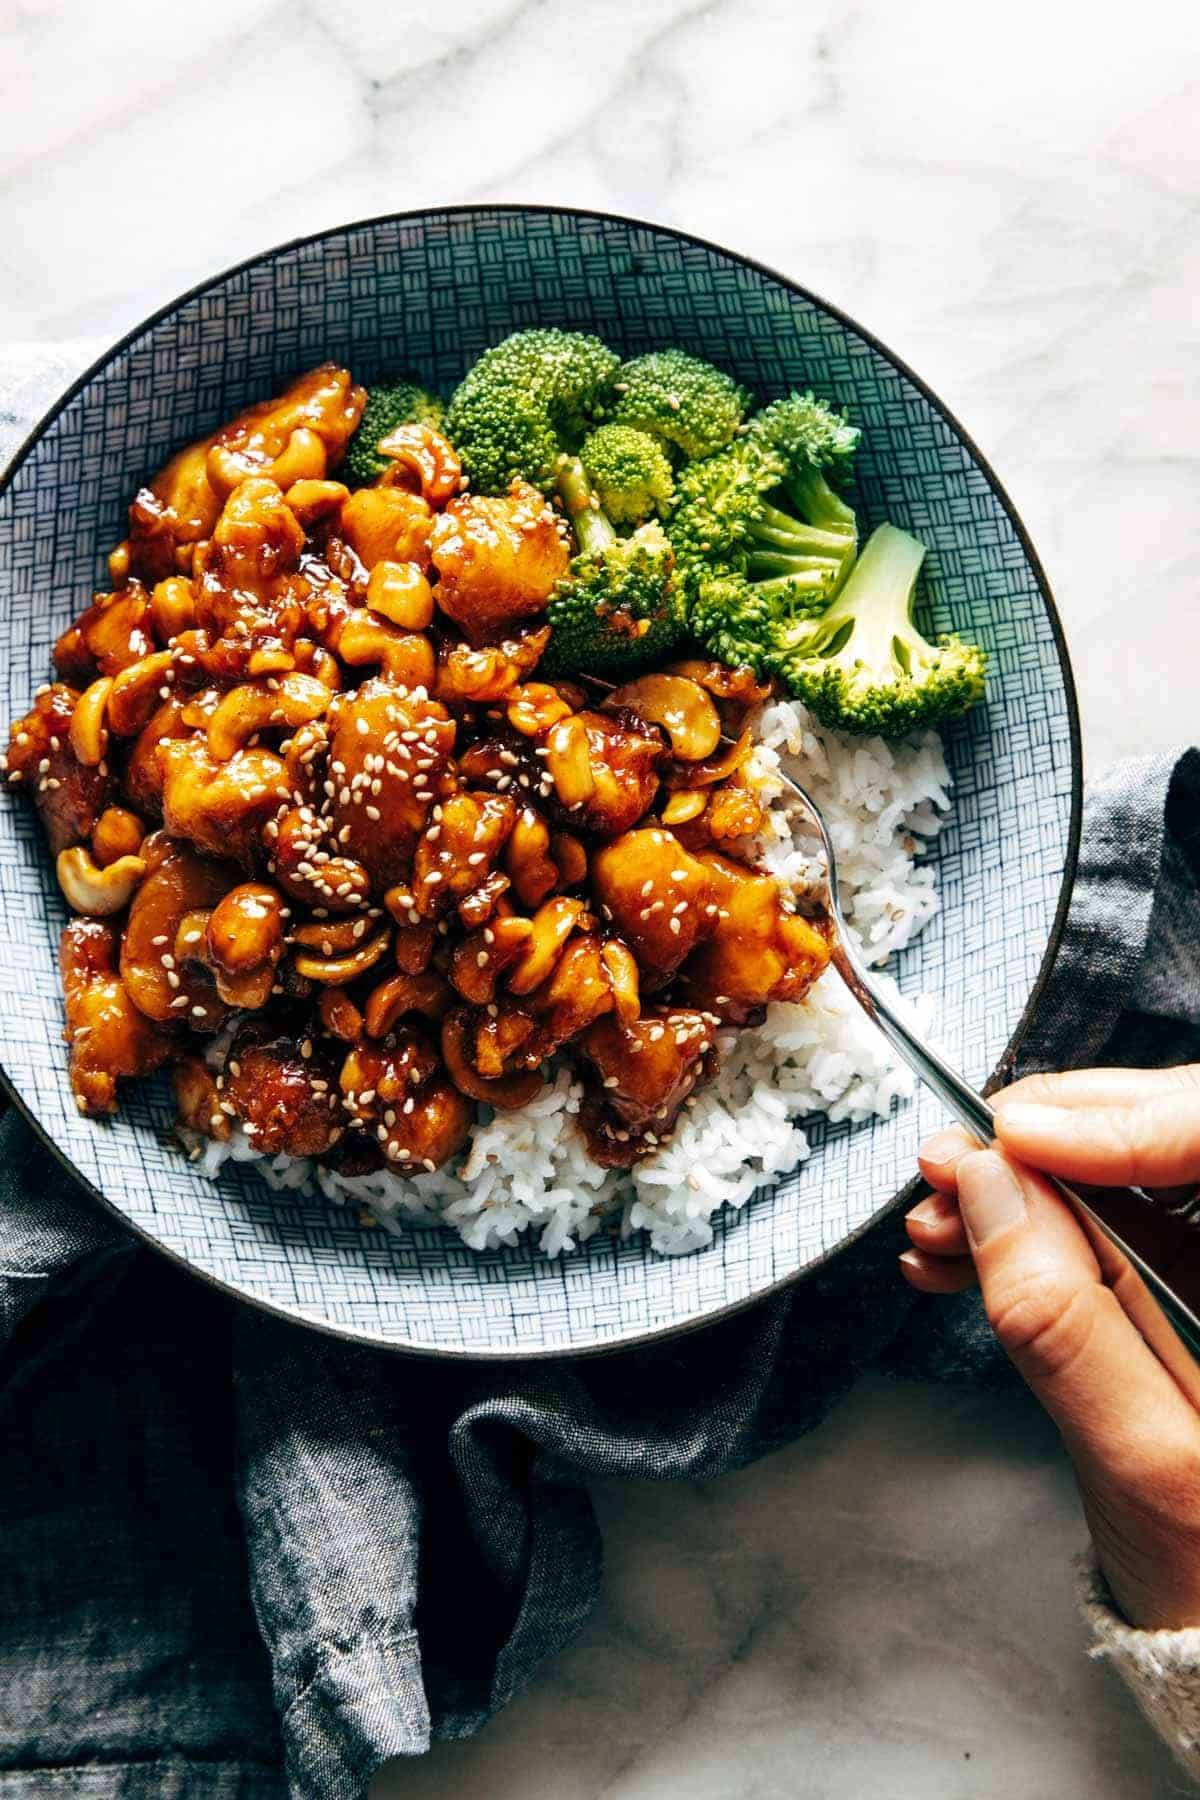 Cashew chicken in a bowl with rice and broccoli.